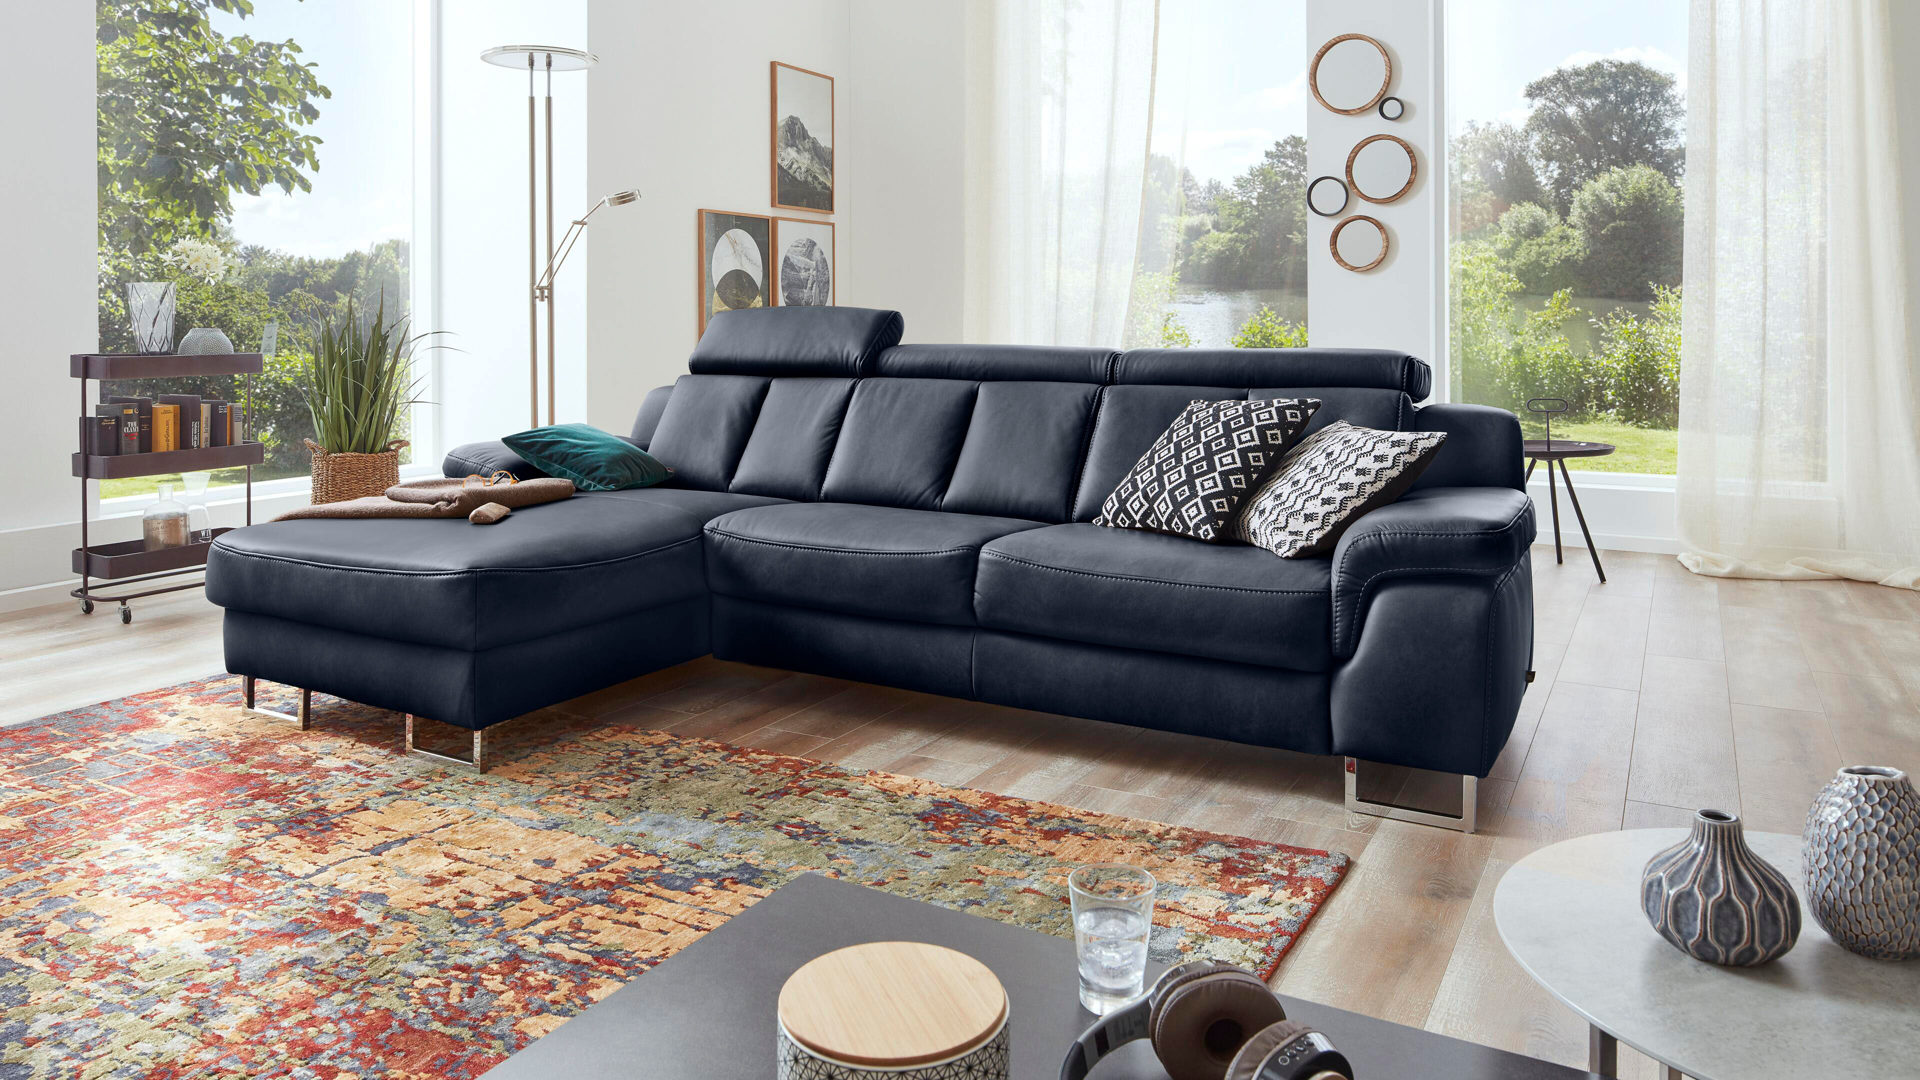 Ecksofa Interliving aus Leder in Blau Interliving Sofa Serie 4050 – Eckkombination nachtblaues LongLife-Leder Cloudy & Chromfüße – Schenkelmaß ca. 177 x 289 cm